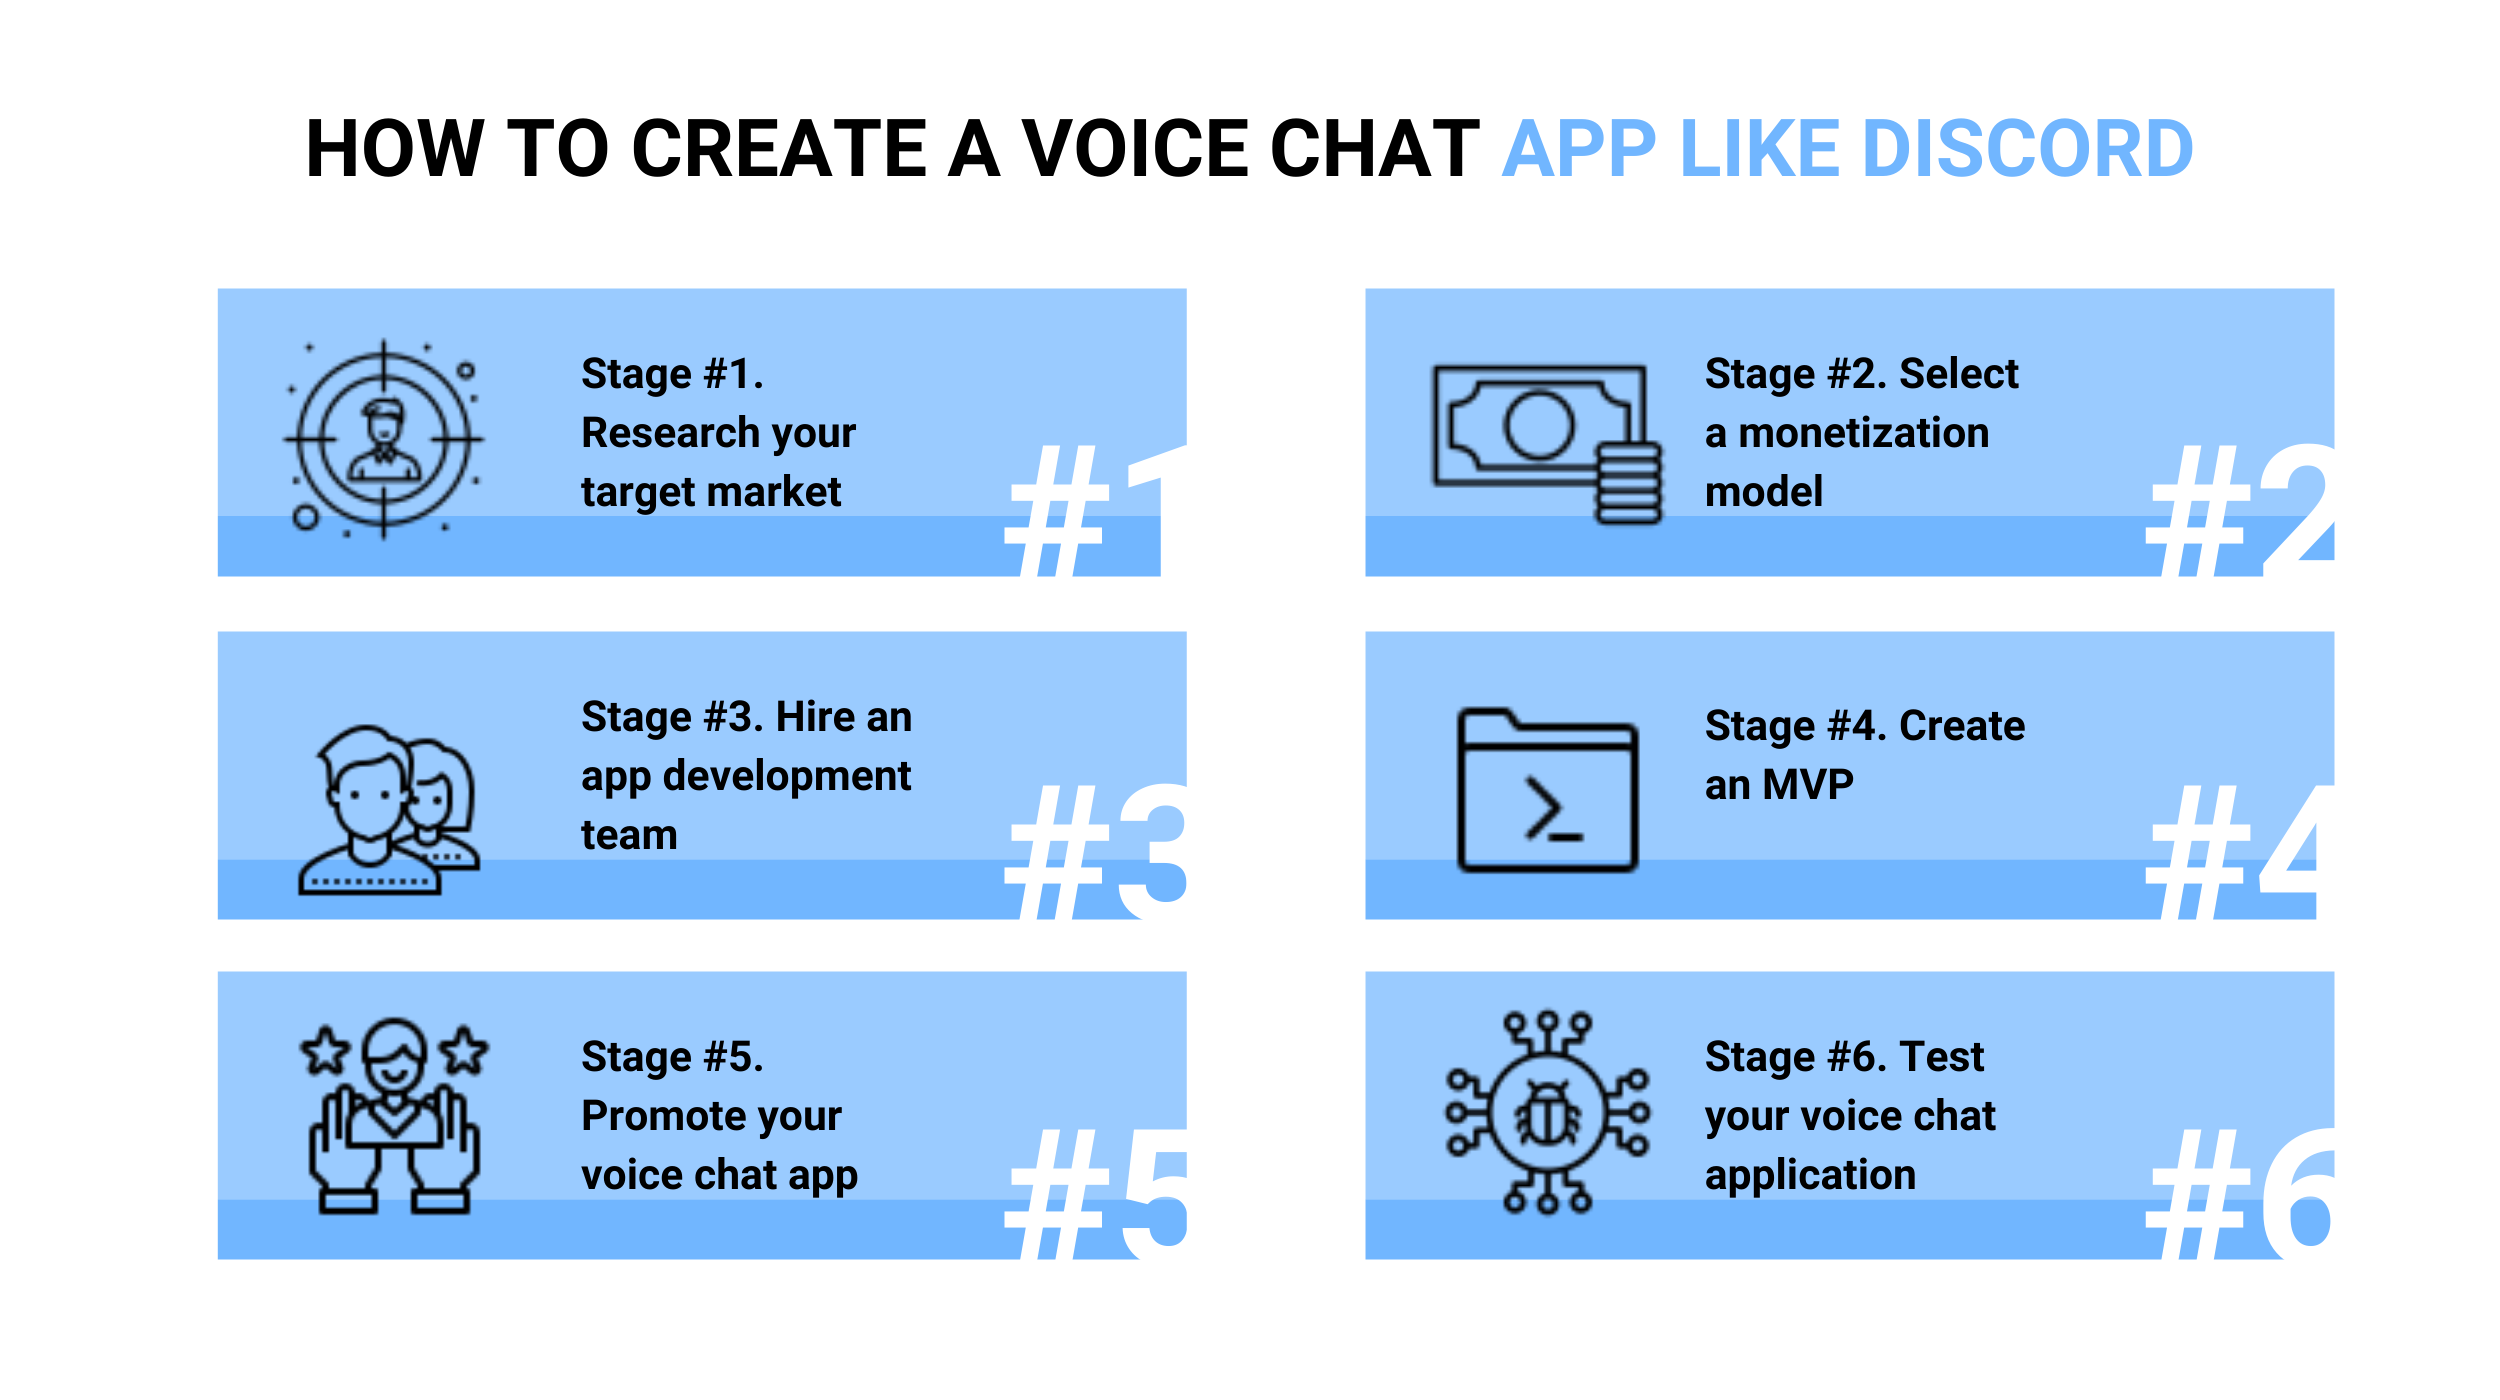 How to Create a Voice Chat App Like Discord: Main Steps